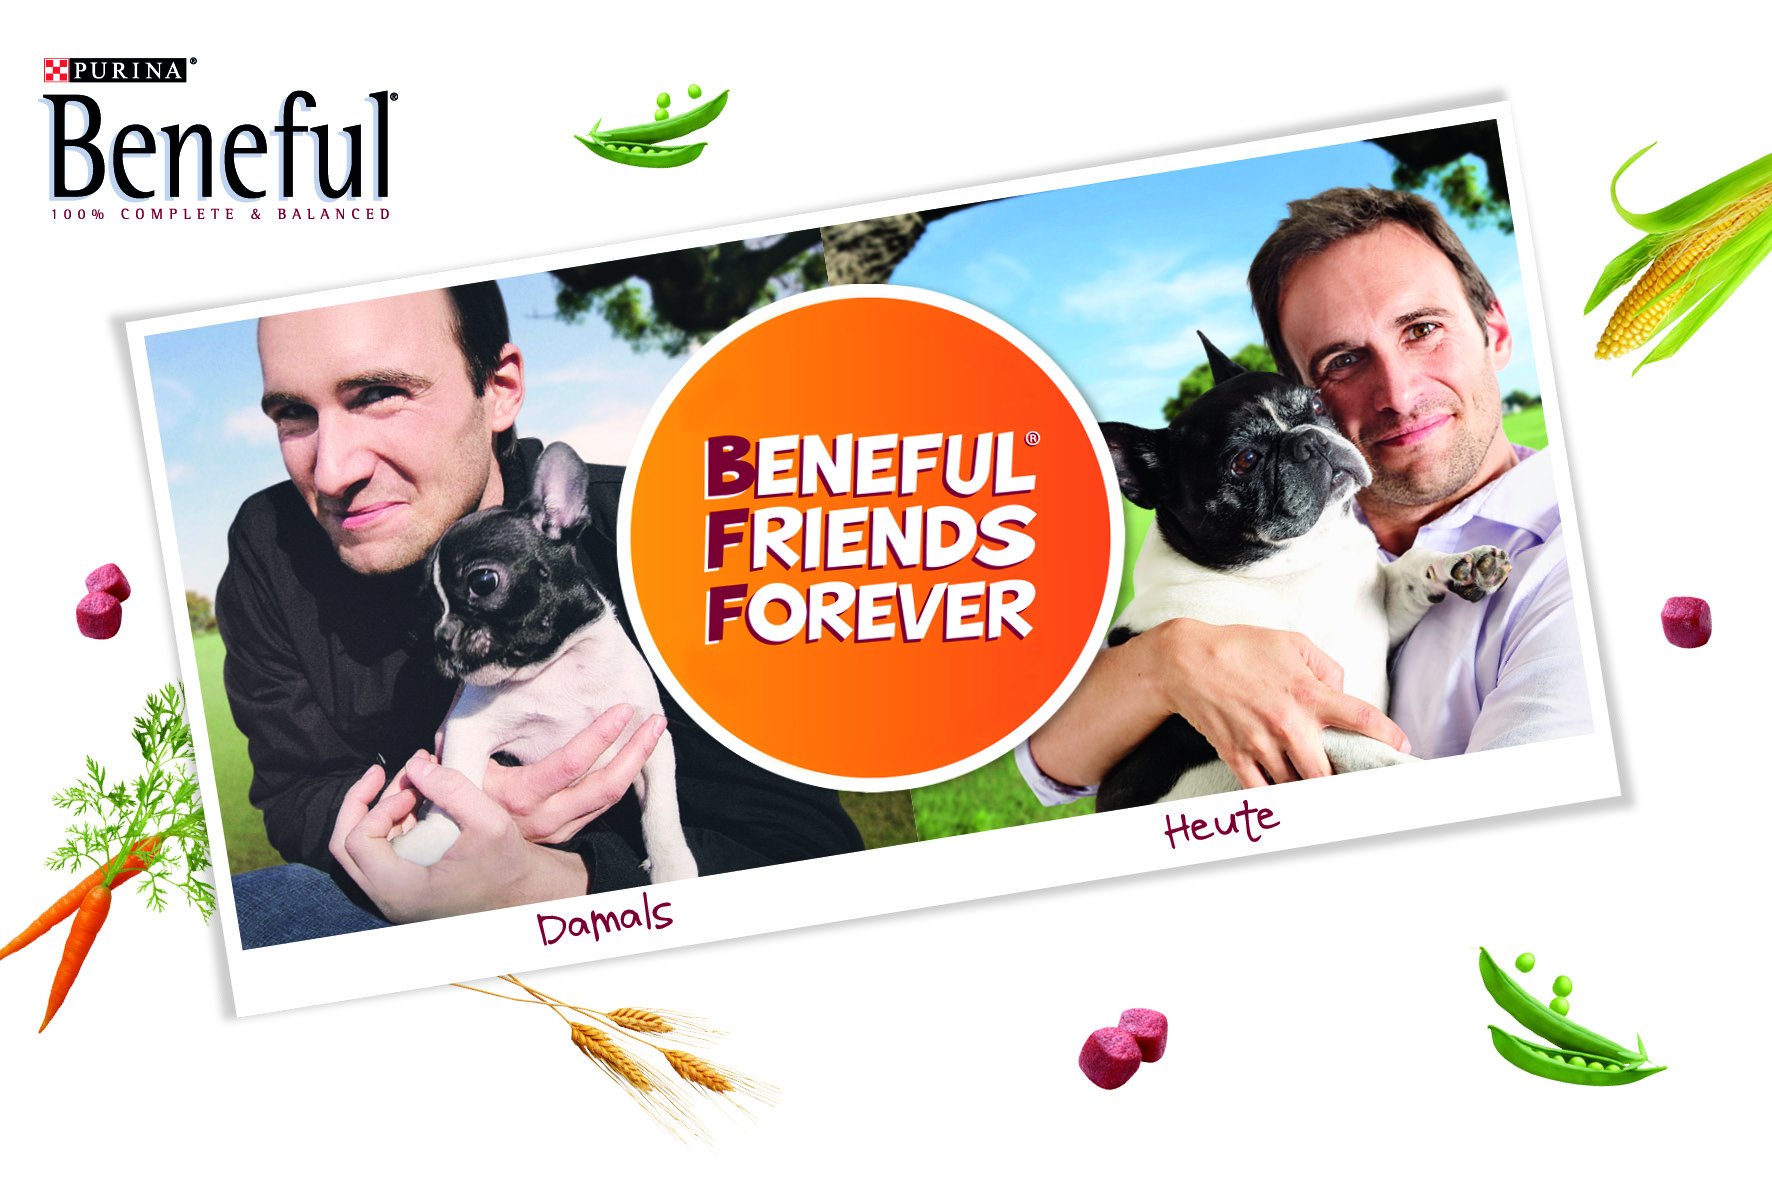 Logo Beneful Friends Forever